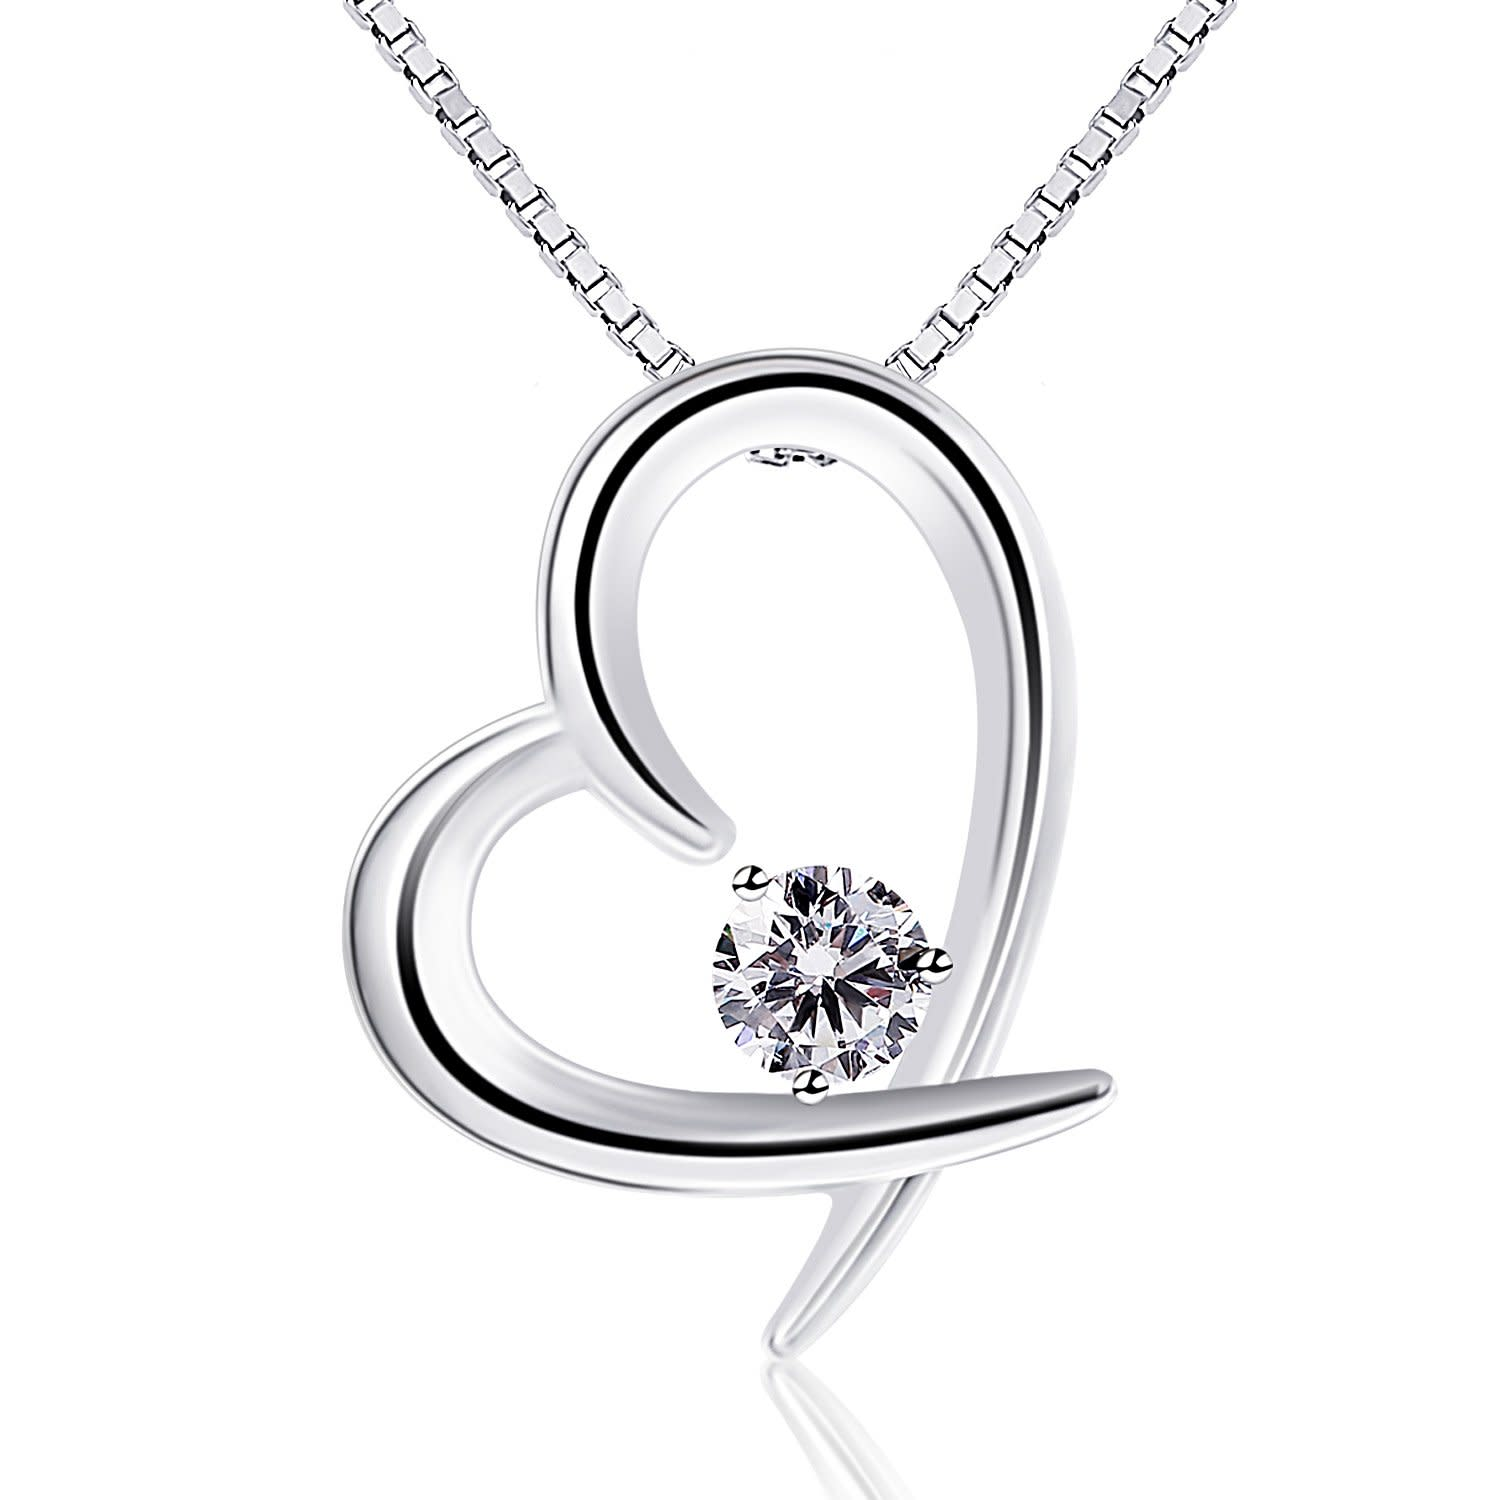 alternate heart os size jewellery reno necklace view necklaces product